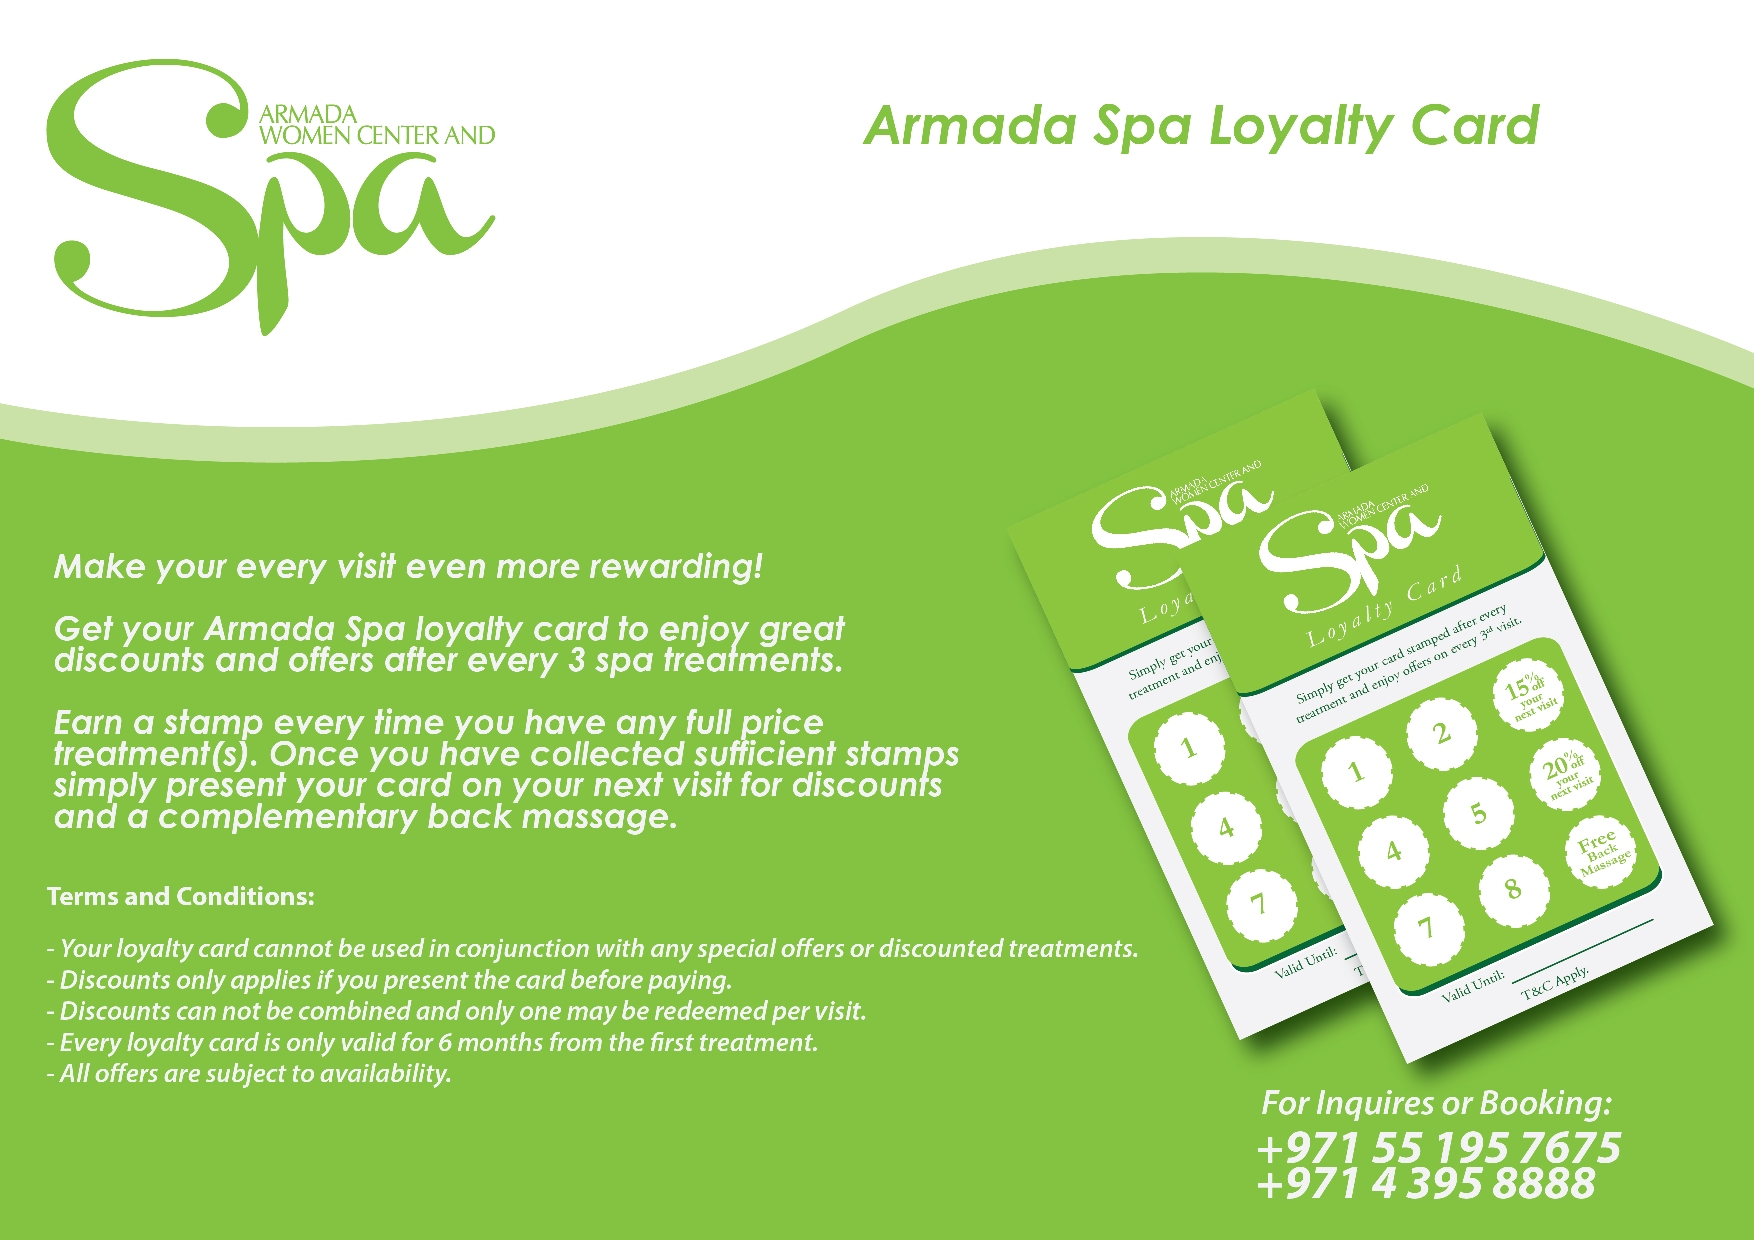 Armada Spa Loyalty Card